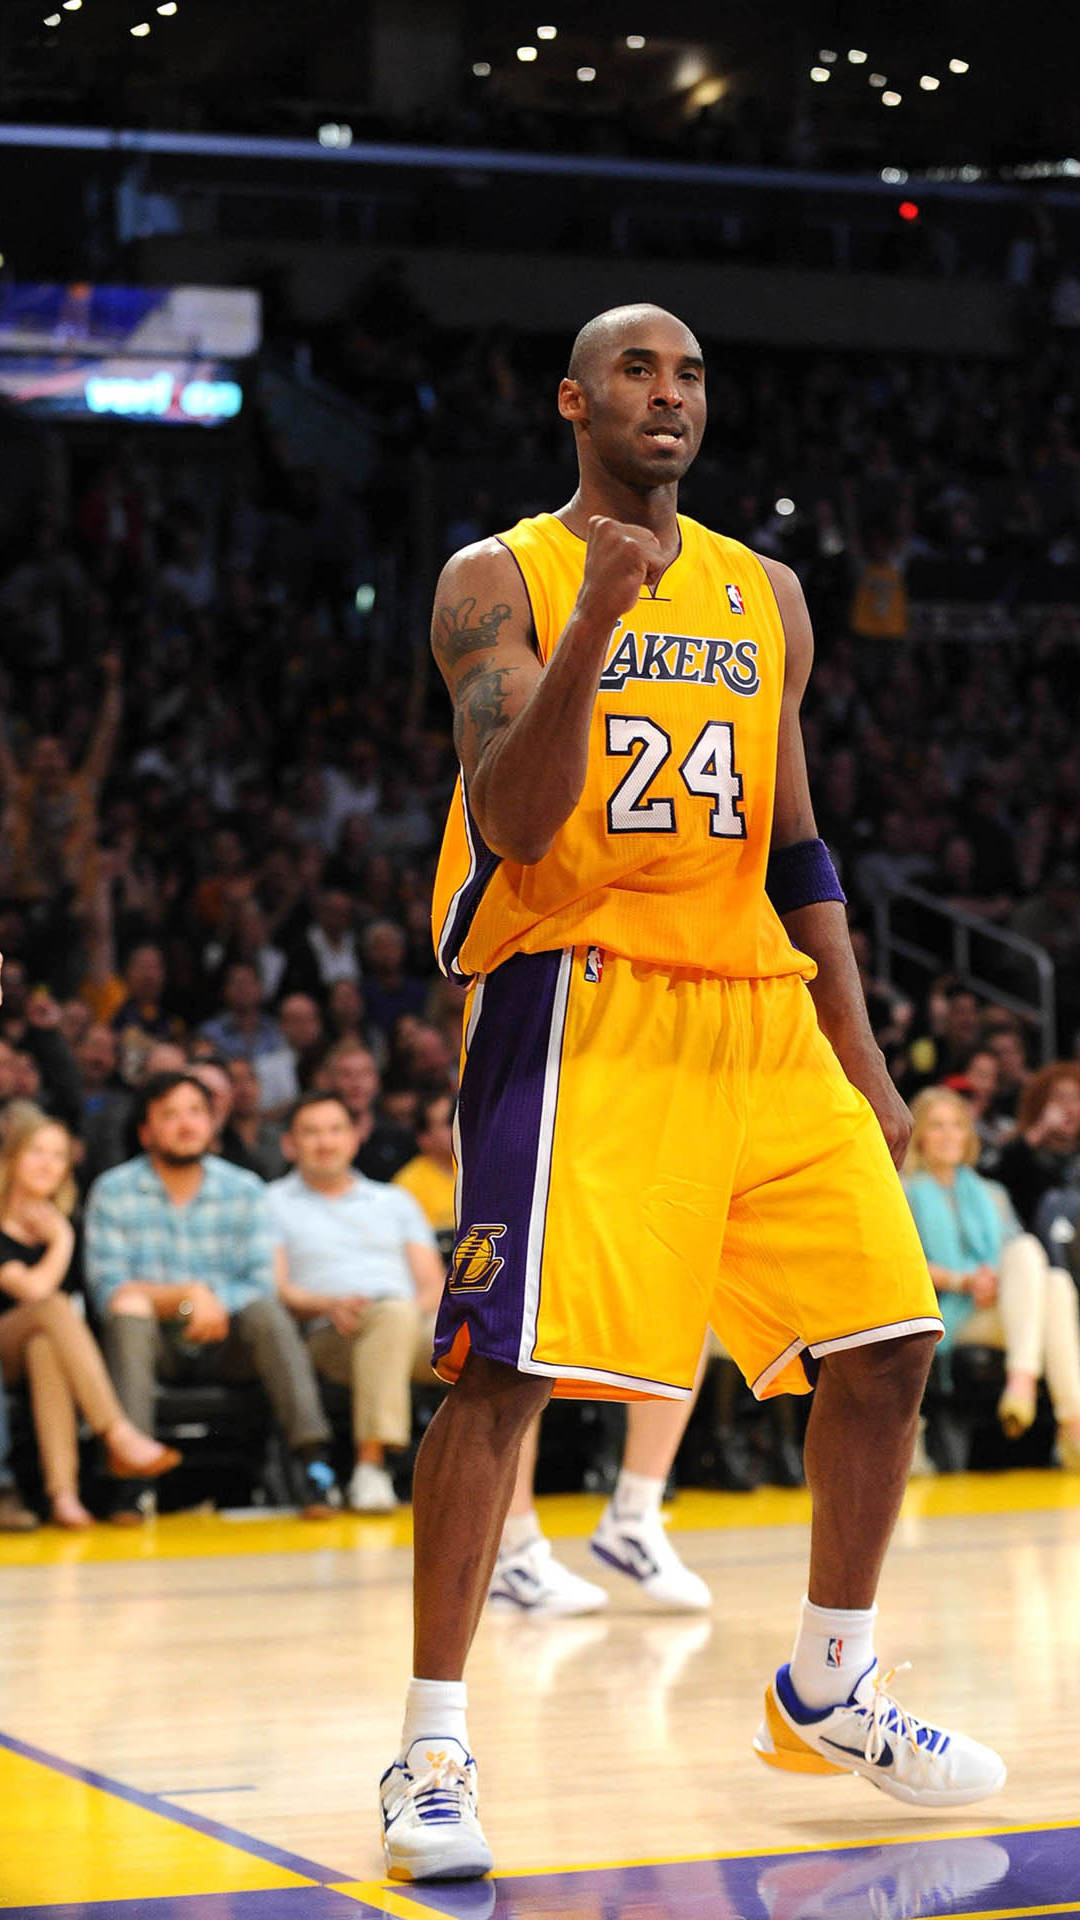 Kobe Bryant iPhone Wallpaper (76+ images)